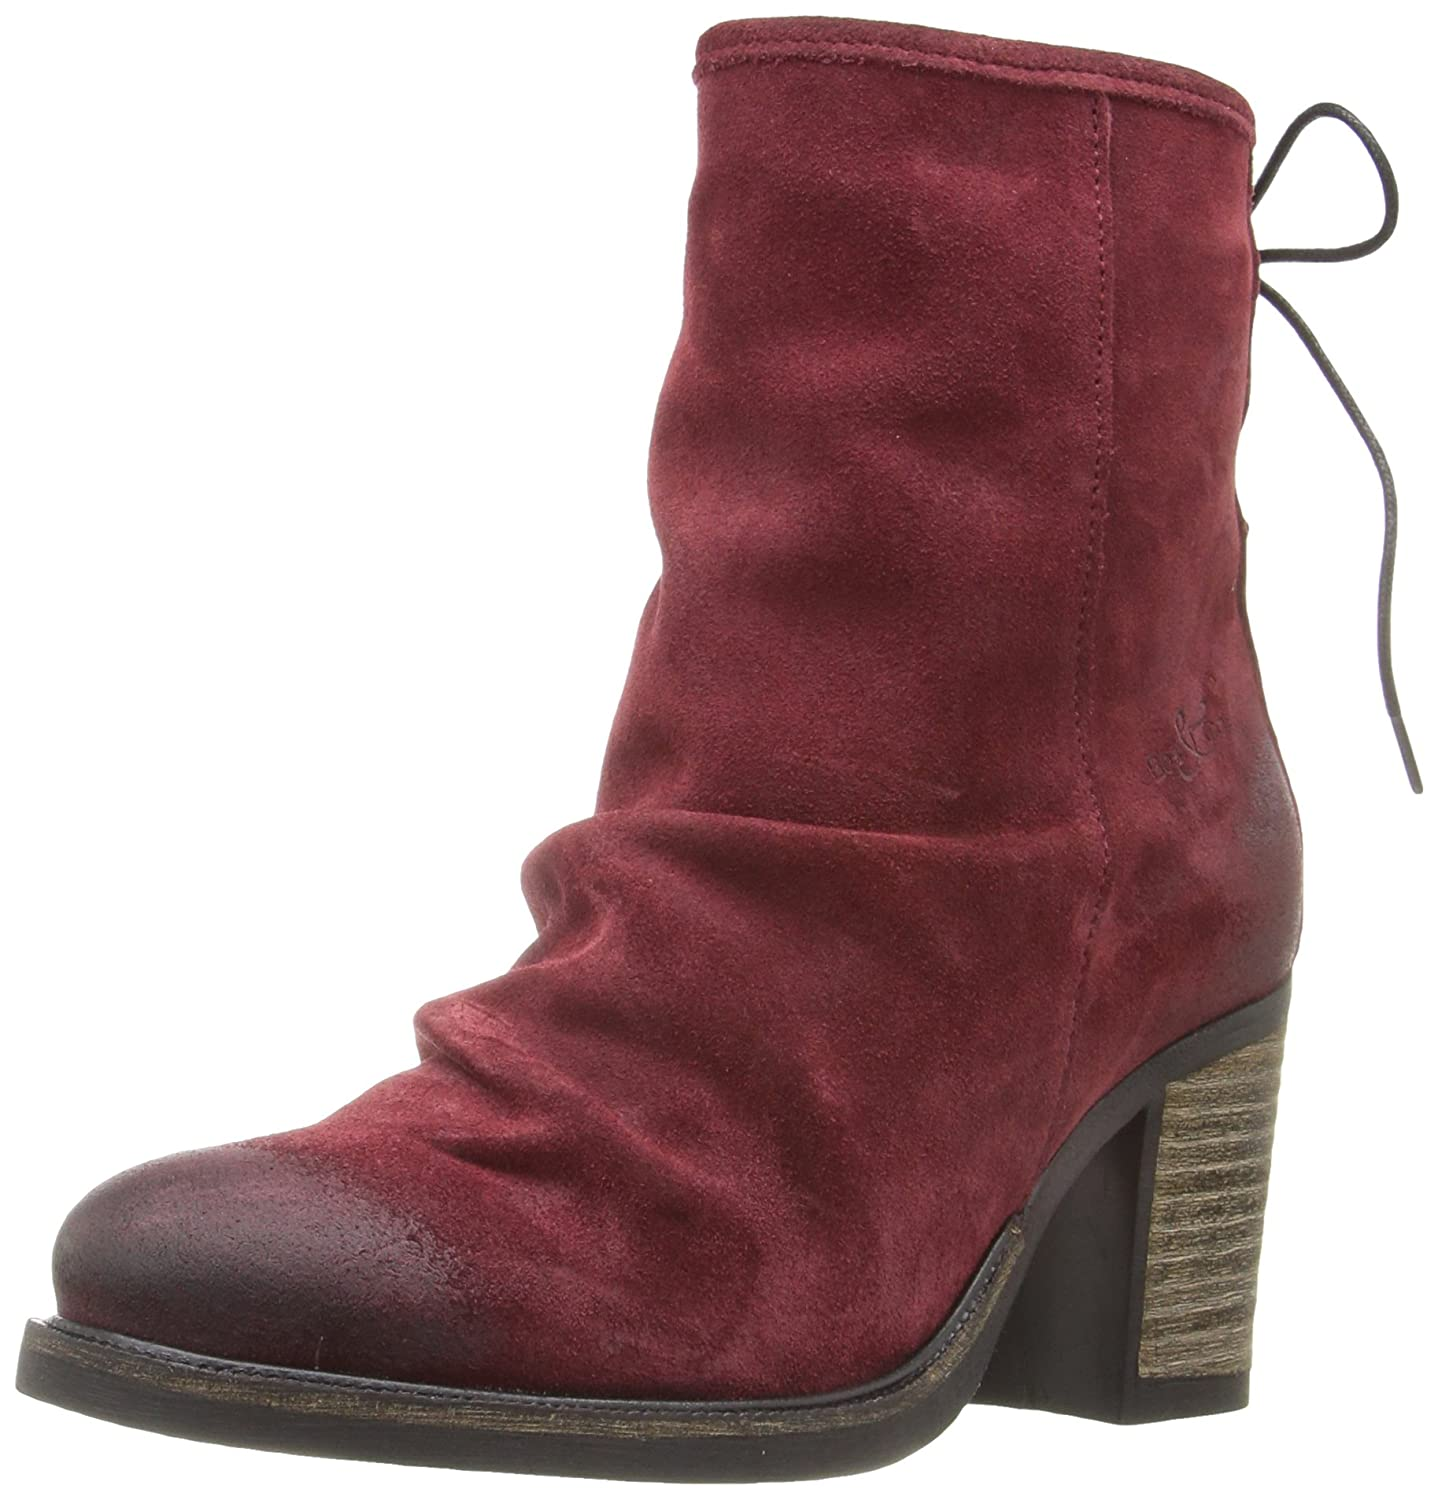 Bos. & Co. Women's Barlow Boot B01CRC1LCY 37 EU/6.5 - 7 M US|Scarlet Oil Suede